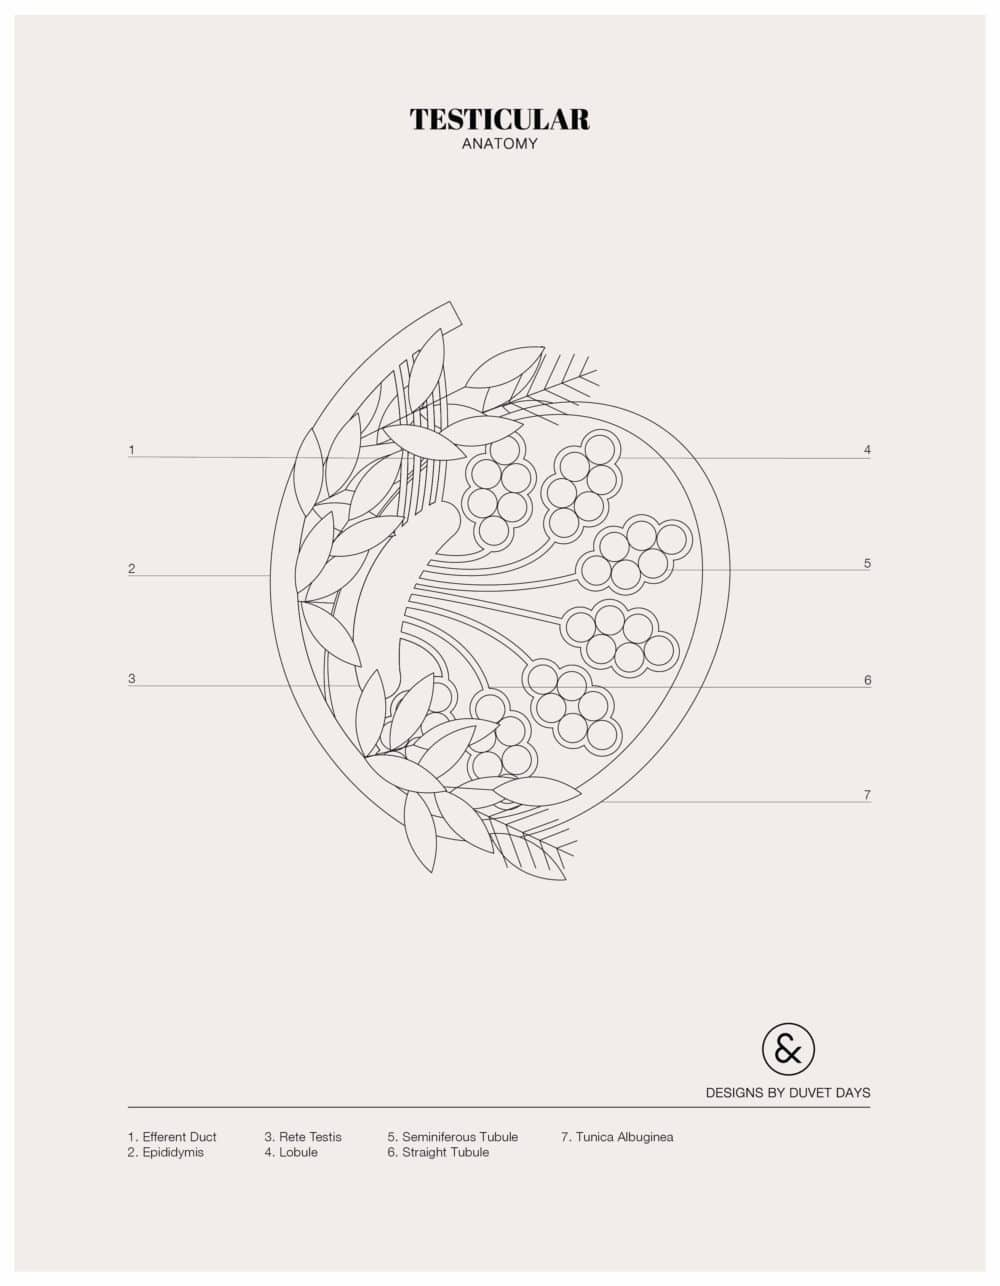 Designs By Duvet Days_8.5x11_Testicular_Colouring Sheet_Preview